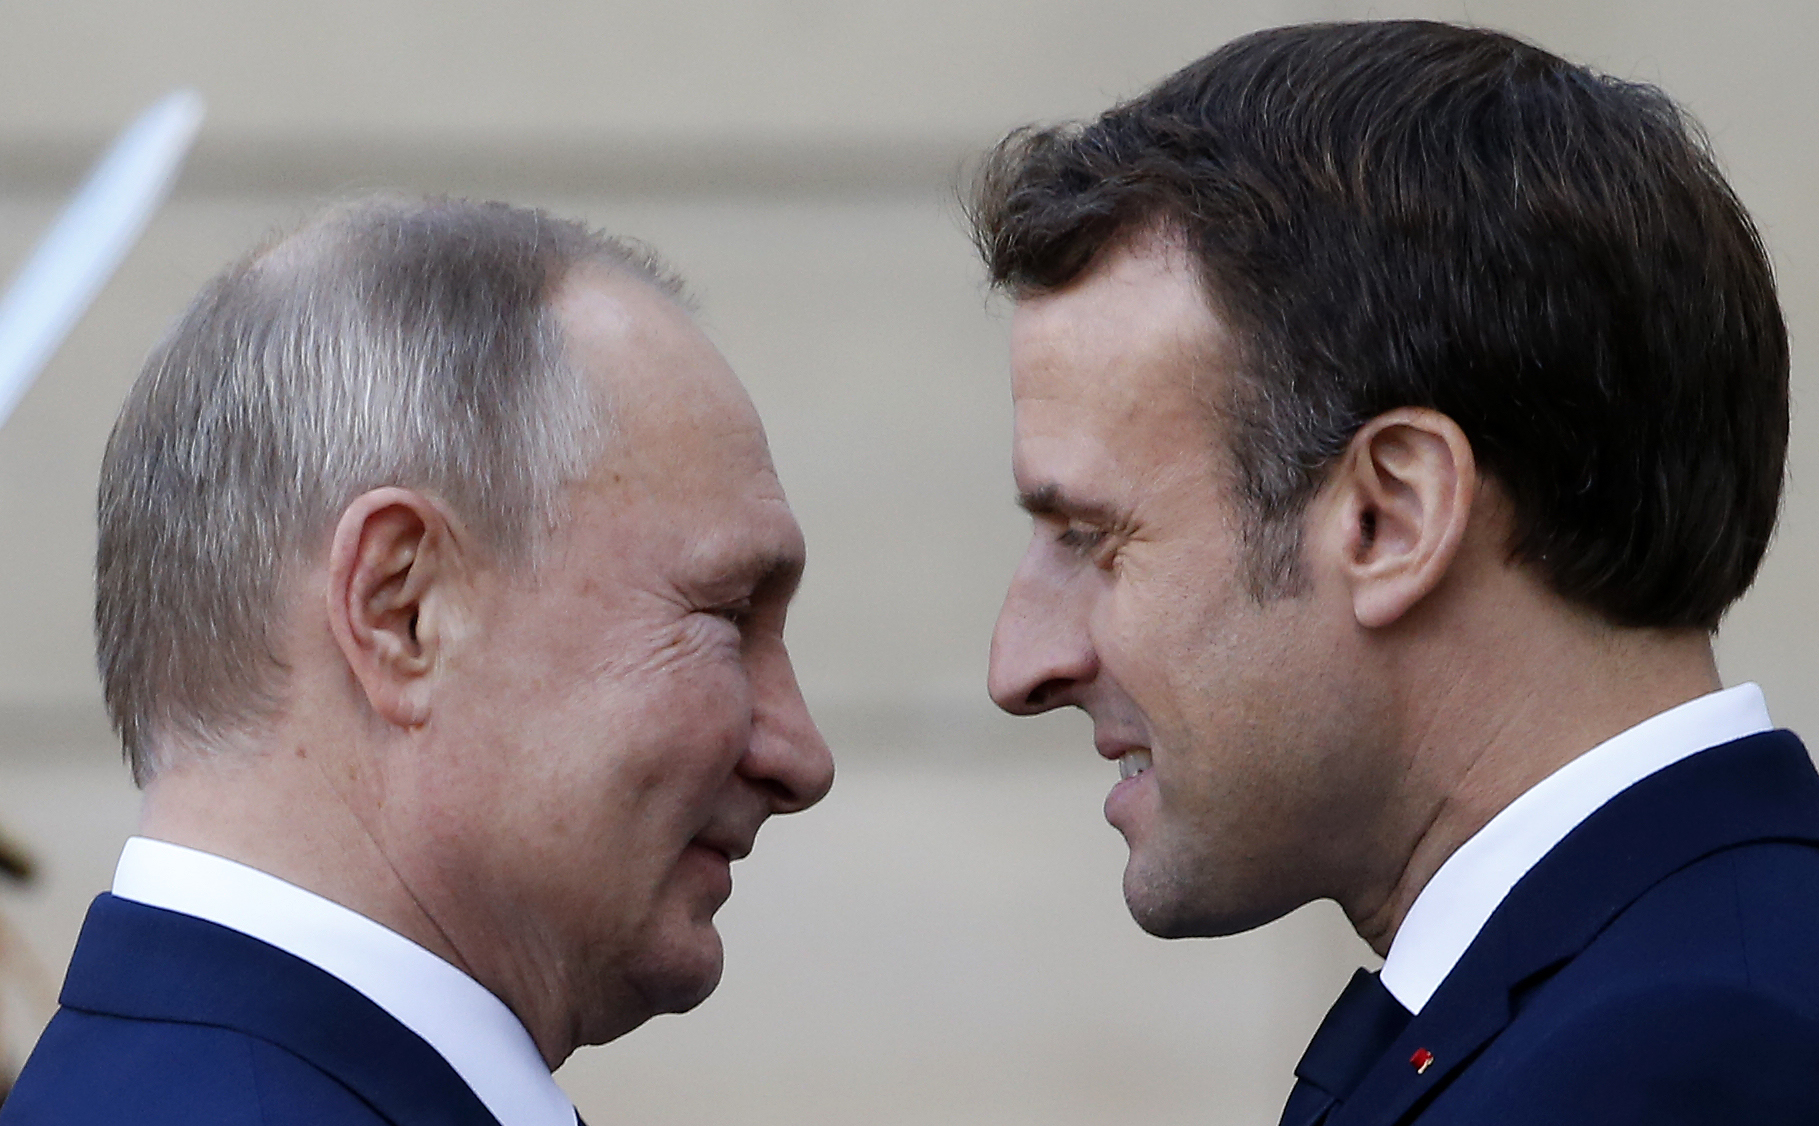 A photograph of French President Emmanuel Macron welcoming Russian President, Vladimir Putin as he arrives at the Elysee Presidential Palace to attend a summit on Ukraine on December 09, 2019 in Paris, France.